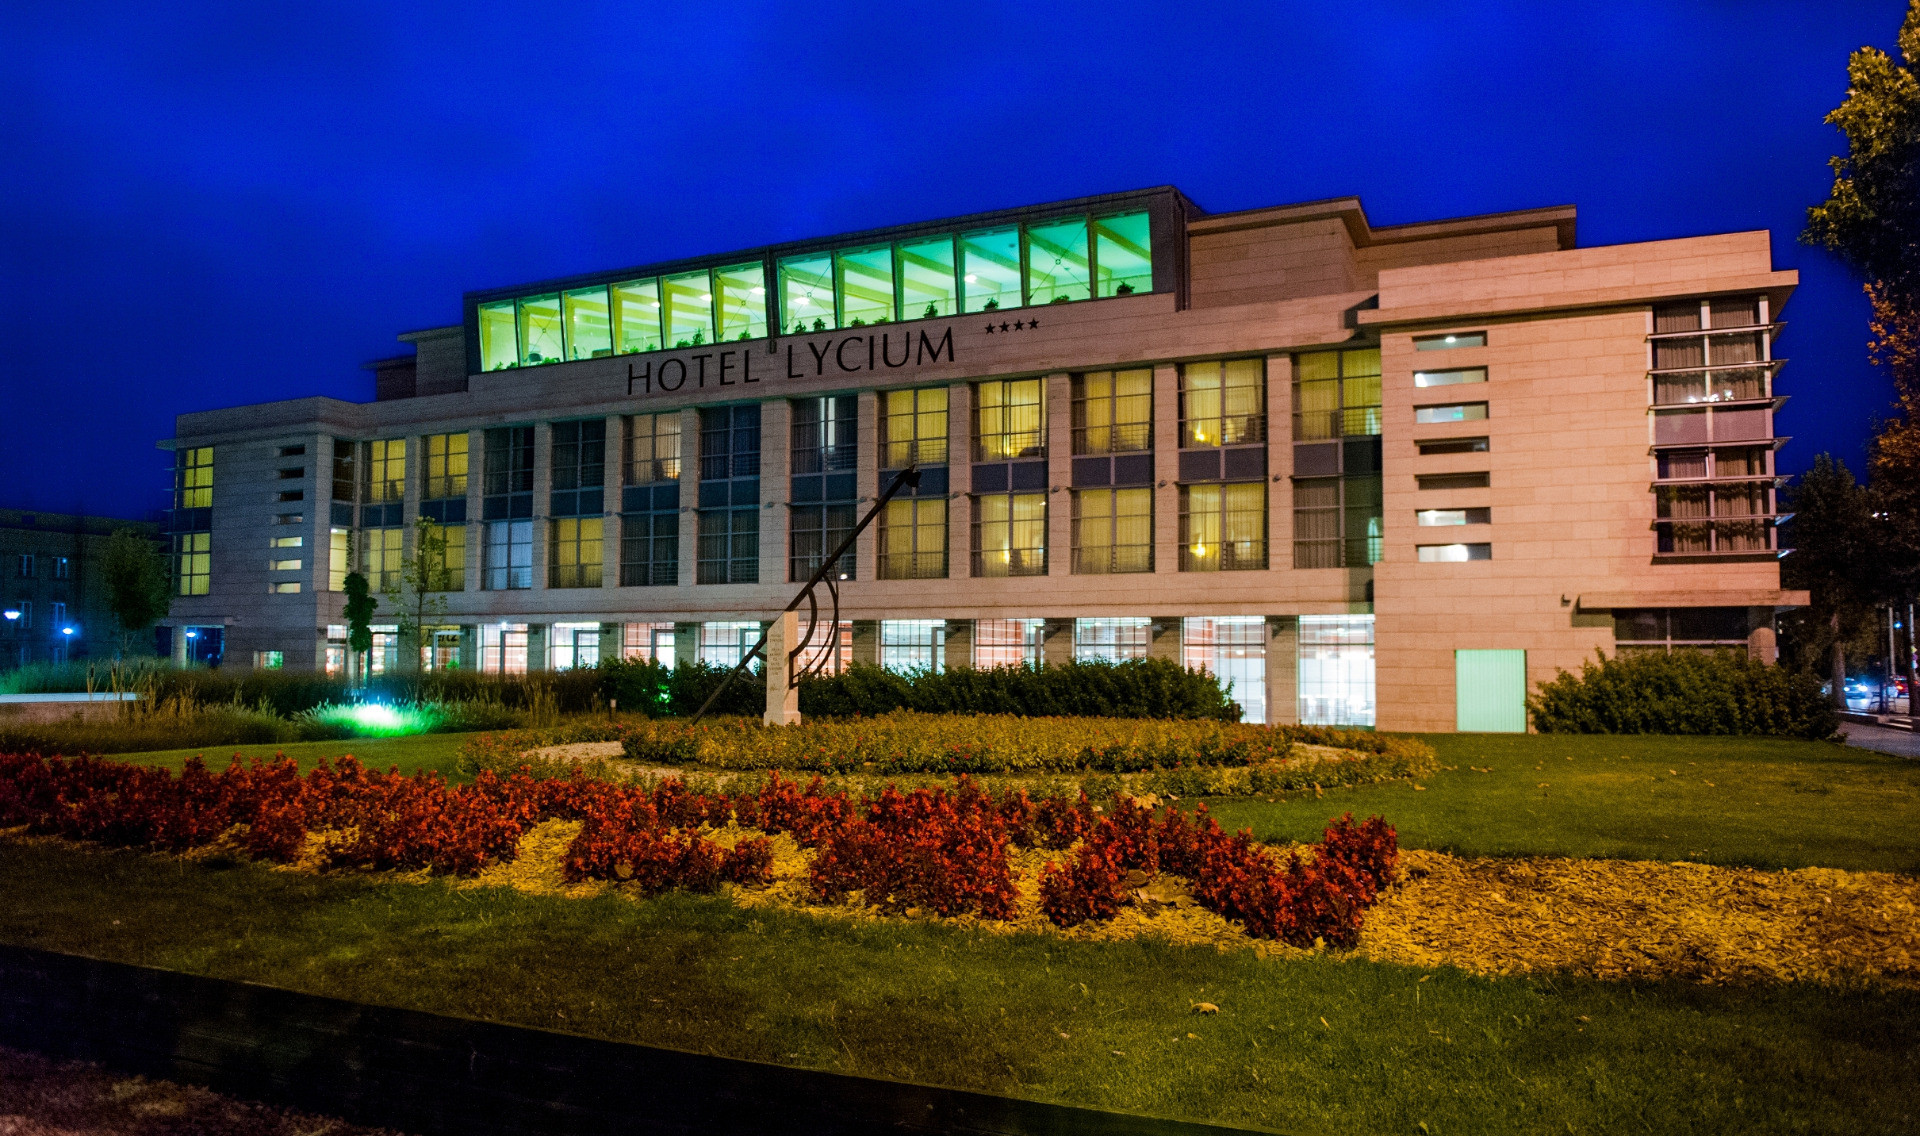 Introducing Kölcsey Convention Centre & Hotel Lycium In Debrecen